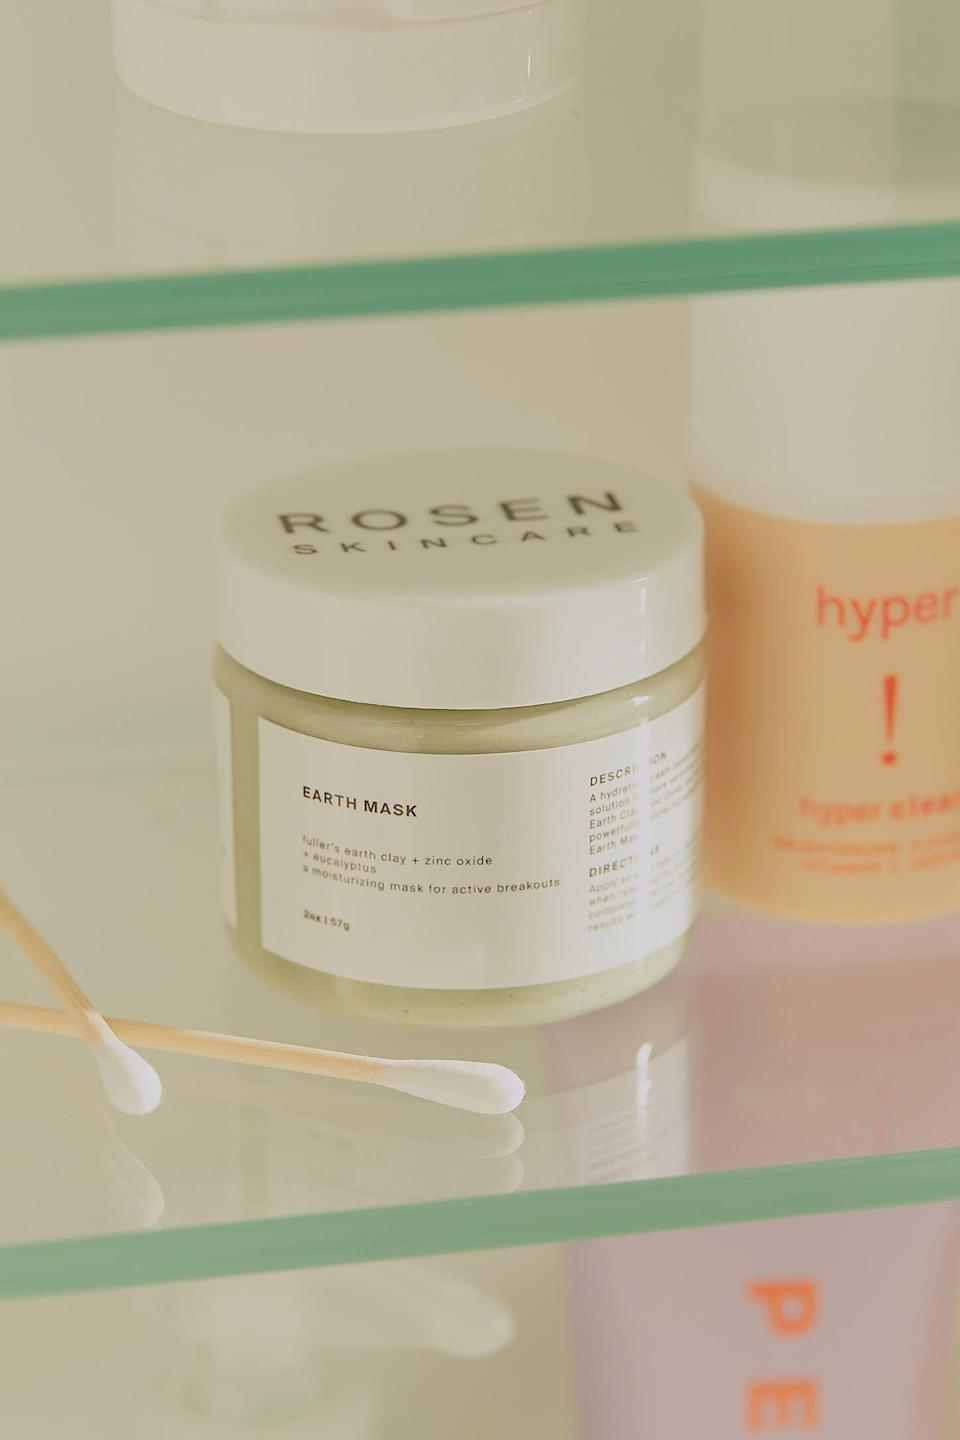 """<p><strong>ROSEN Skincare</strong></p><p>urbanoutfitters.com</p><p><strong>$18.00</strong></p><p><a href=""""https://go.redirectingat.com?id=74968X1596630&url=https%3A%2F%2Fwww.urbanoutfitters.com%2Fshop%2Frosen-skincare-earth-cream-mask&sref=https%3A%2F%2Fwww.seventeen.com%2Flife%2Fg23515577%2Fcool-gifts-for-teen-boys%2F"""" rel=""""nofollow noopener"""" target=""""_blank"""" data-ylk=""""slk:Shop Now"""" class=""""link rapid-noclick-resp"""">Shop Now</a></p><p>Wow, this mask just <a href=""""https://www.seventeen.com/beauty/makeup-skincare/g25412945/face-mask-for-acne/"""" rel=""""nofollow noopener"""" target=""""_blank"""" data-ylk=""""slk:cleared his skin"""" class=""""link rapid-noclick-resp"""">cleared his skin</a> and boosted his confidence. </p>"""